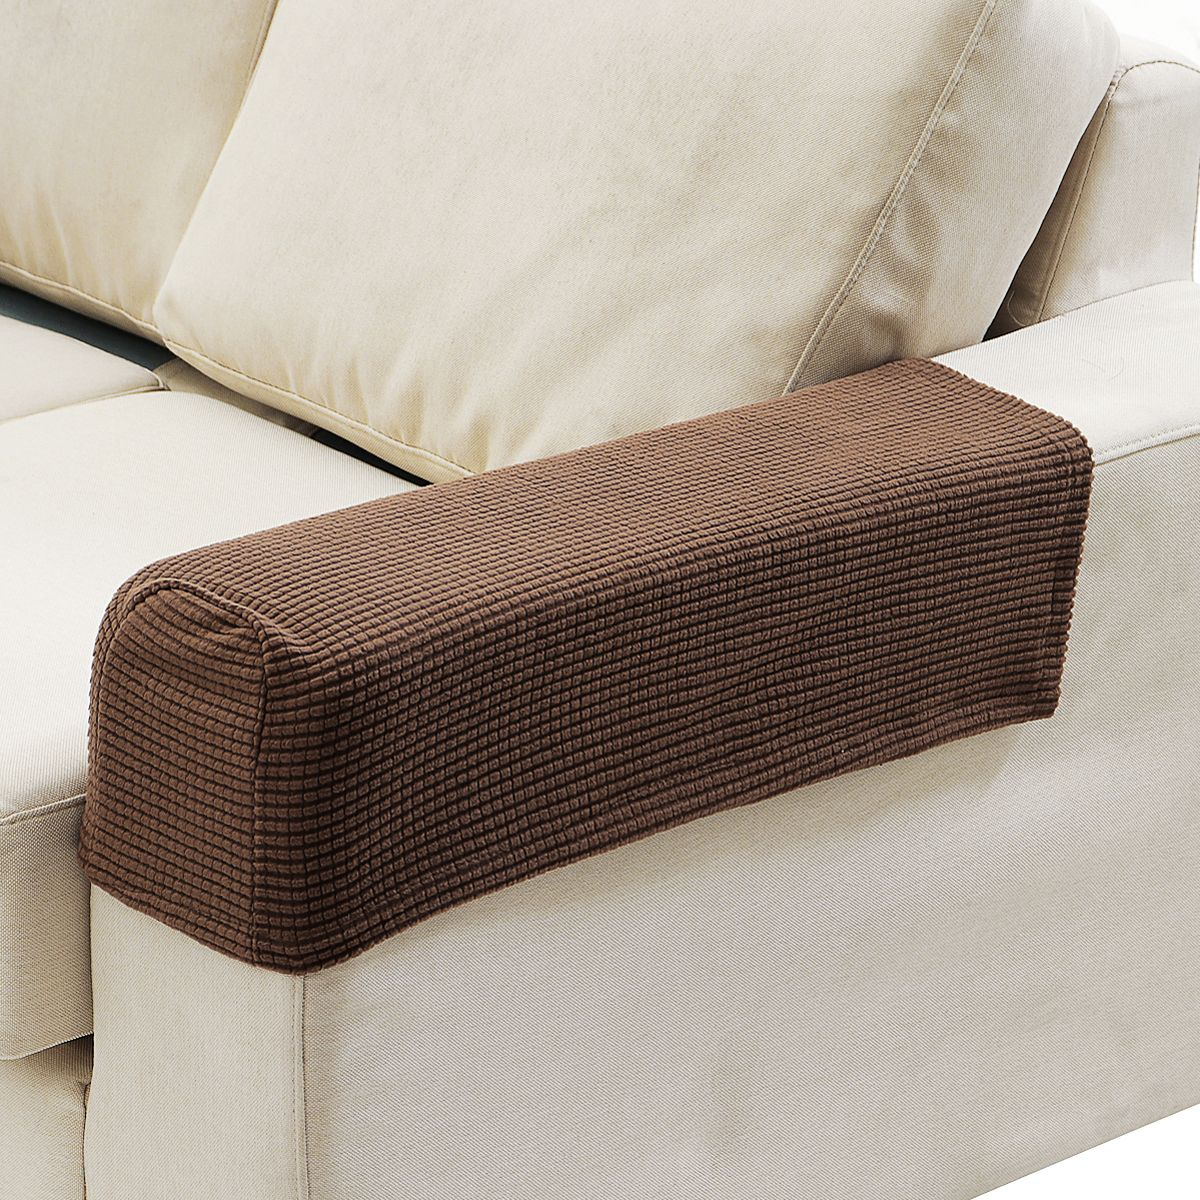 10 Armrest Covers Sofa Most Of The Elegant And Beautiful Sofa